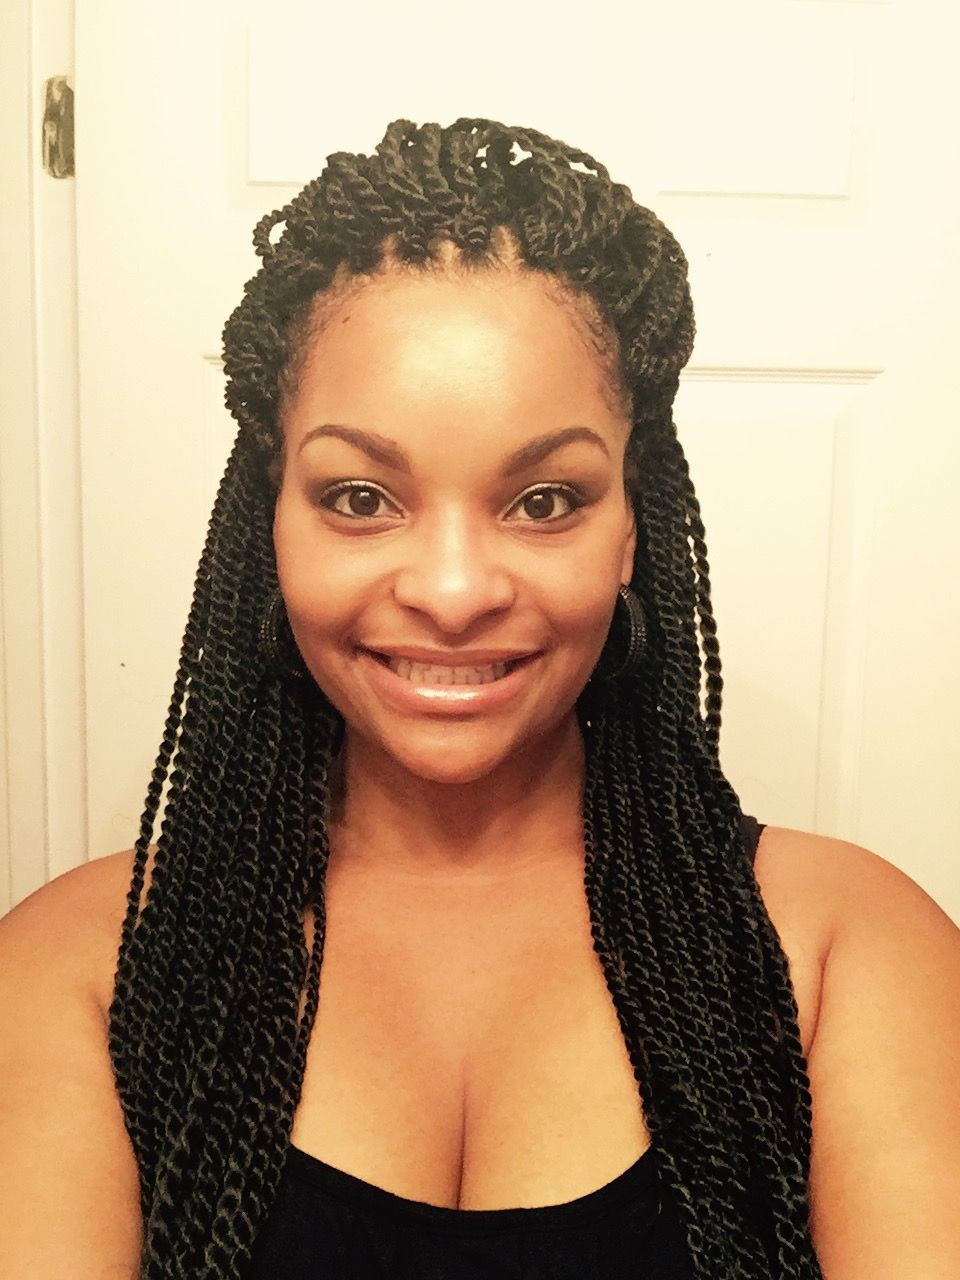 Best ideas about Crochet Senegalese Hairstyles . Save or Pin Senegalese Twists Hairstyle Now.